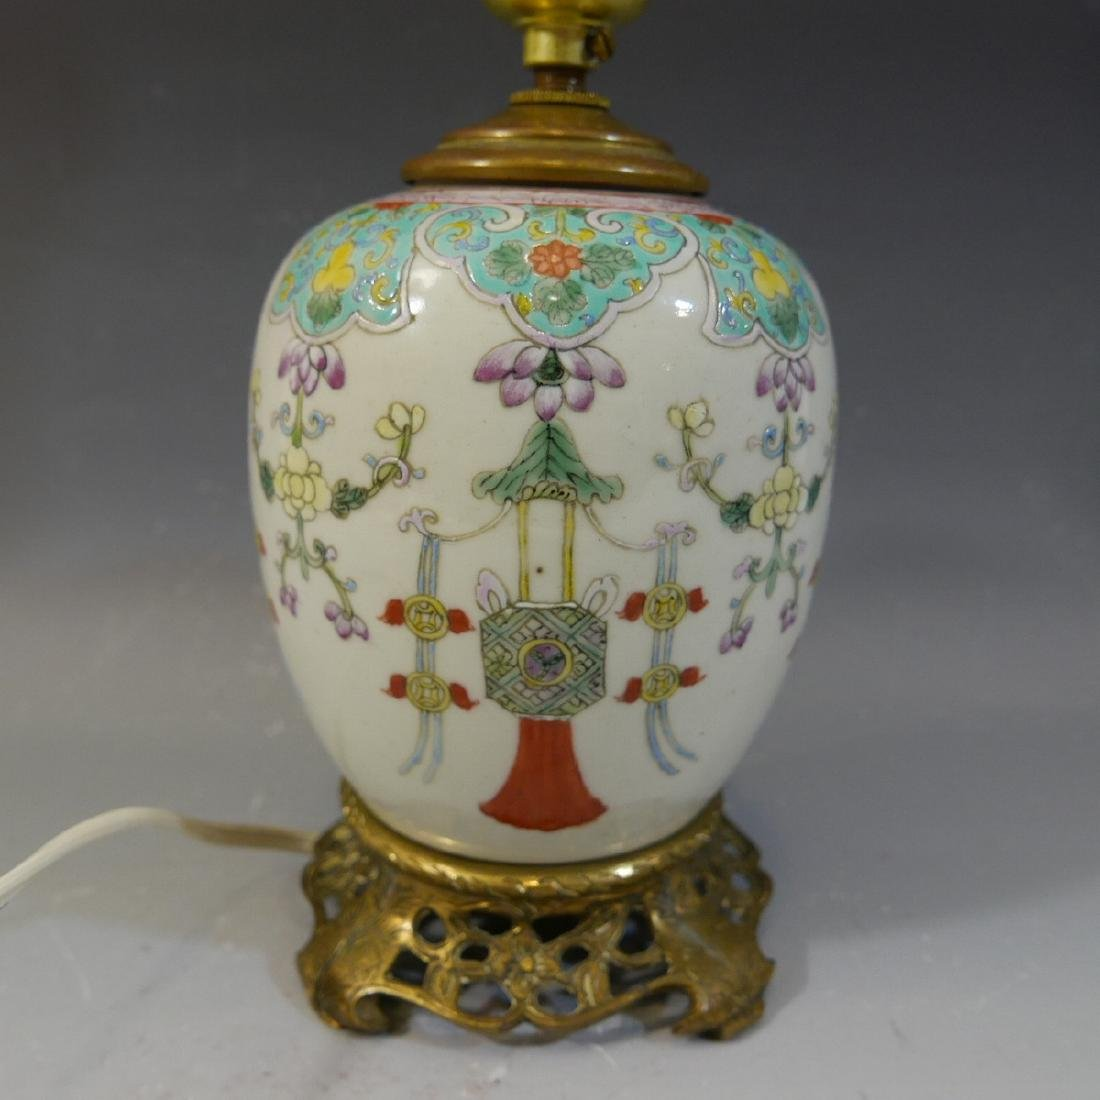 ANTIQUE CHINESE FAMILLE ROSE PORCELAIN VASE - QING